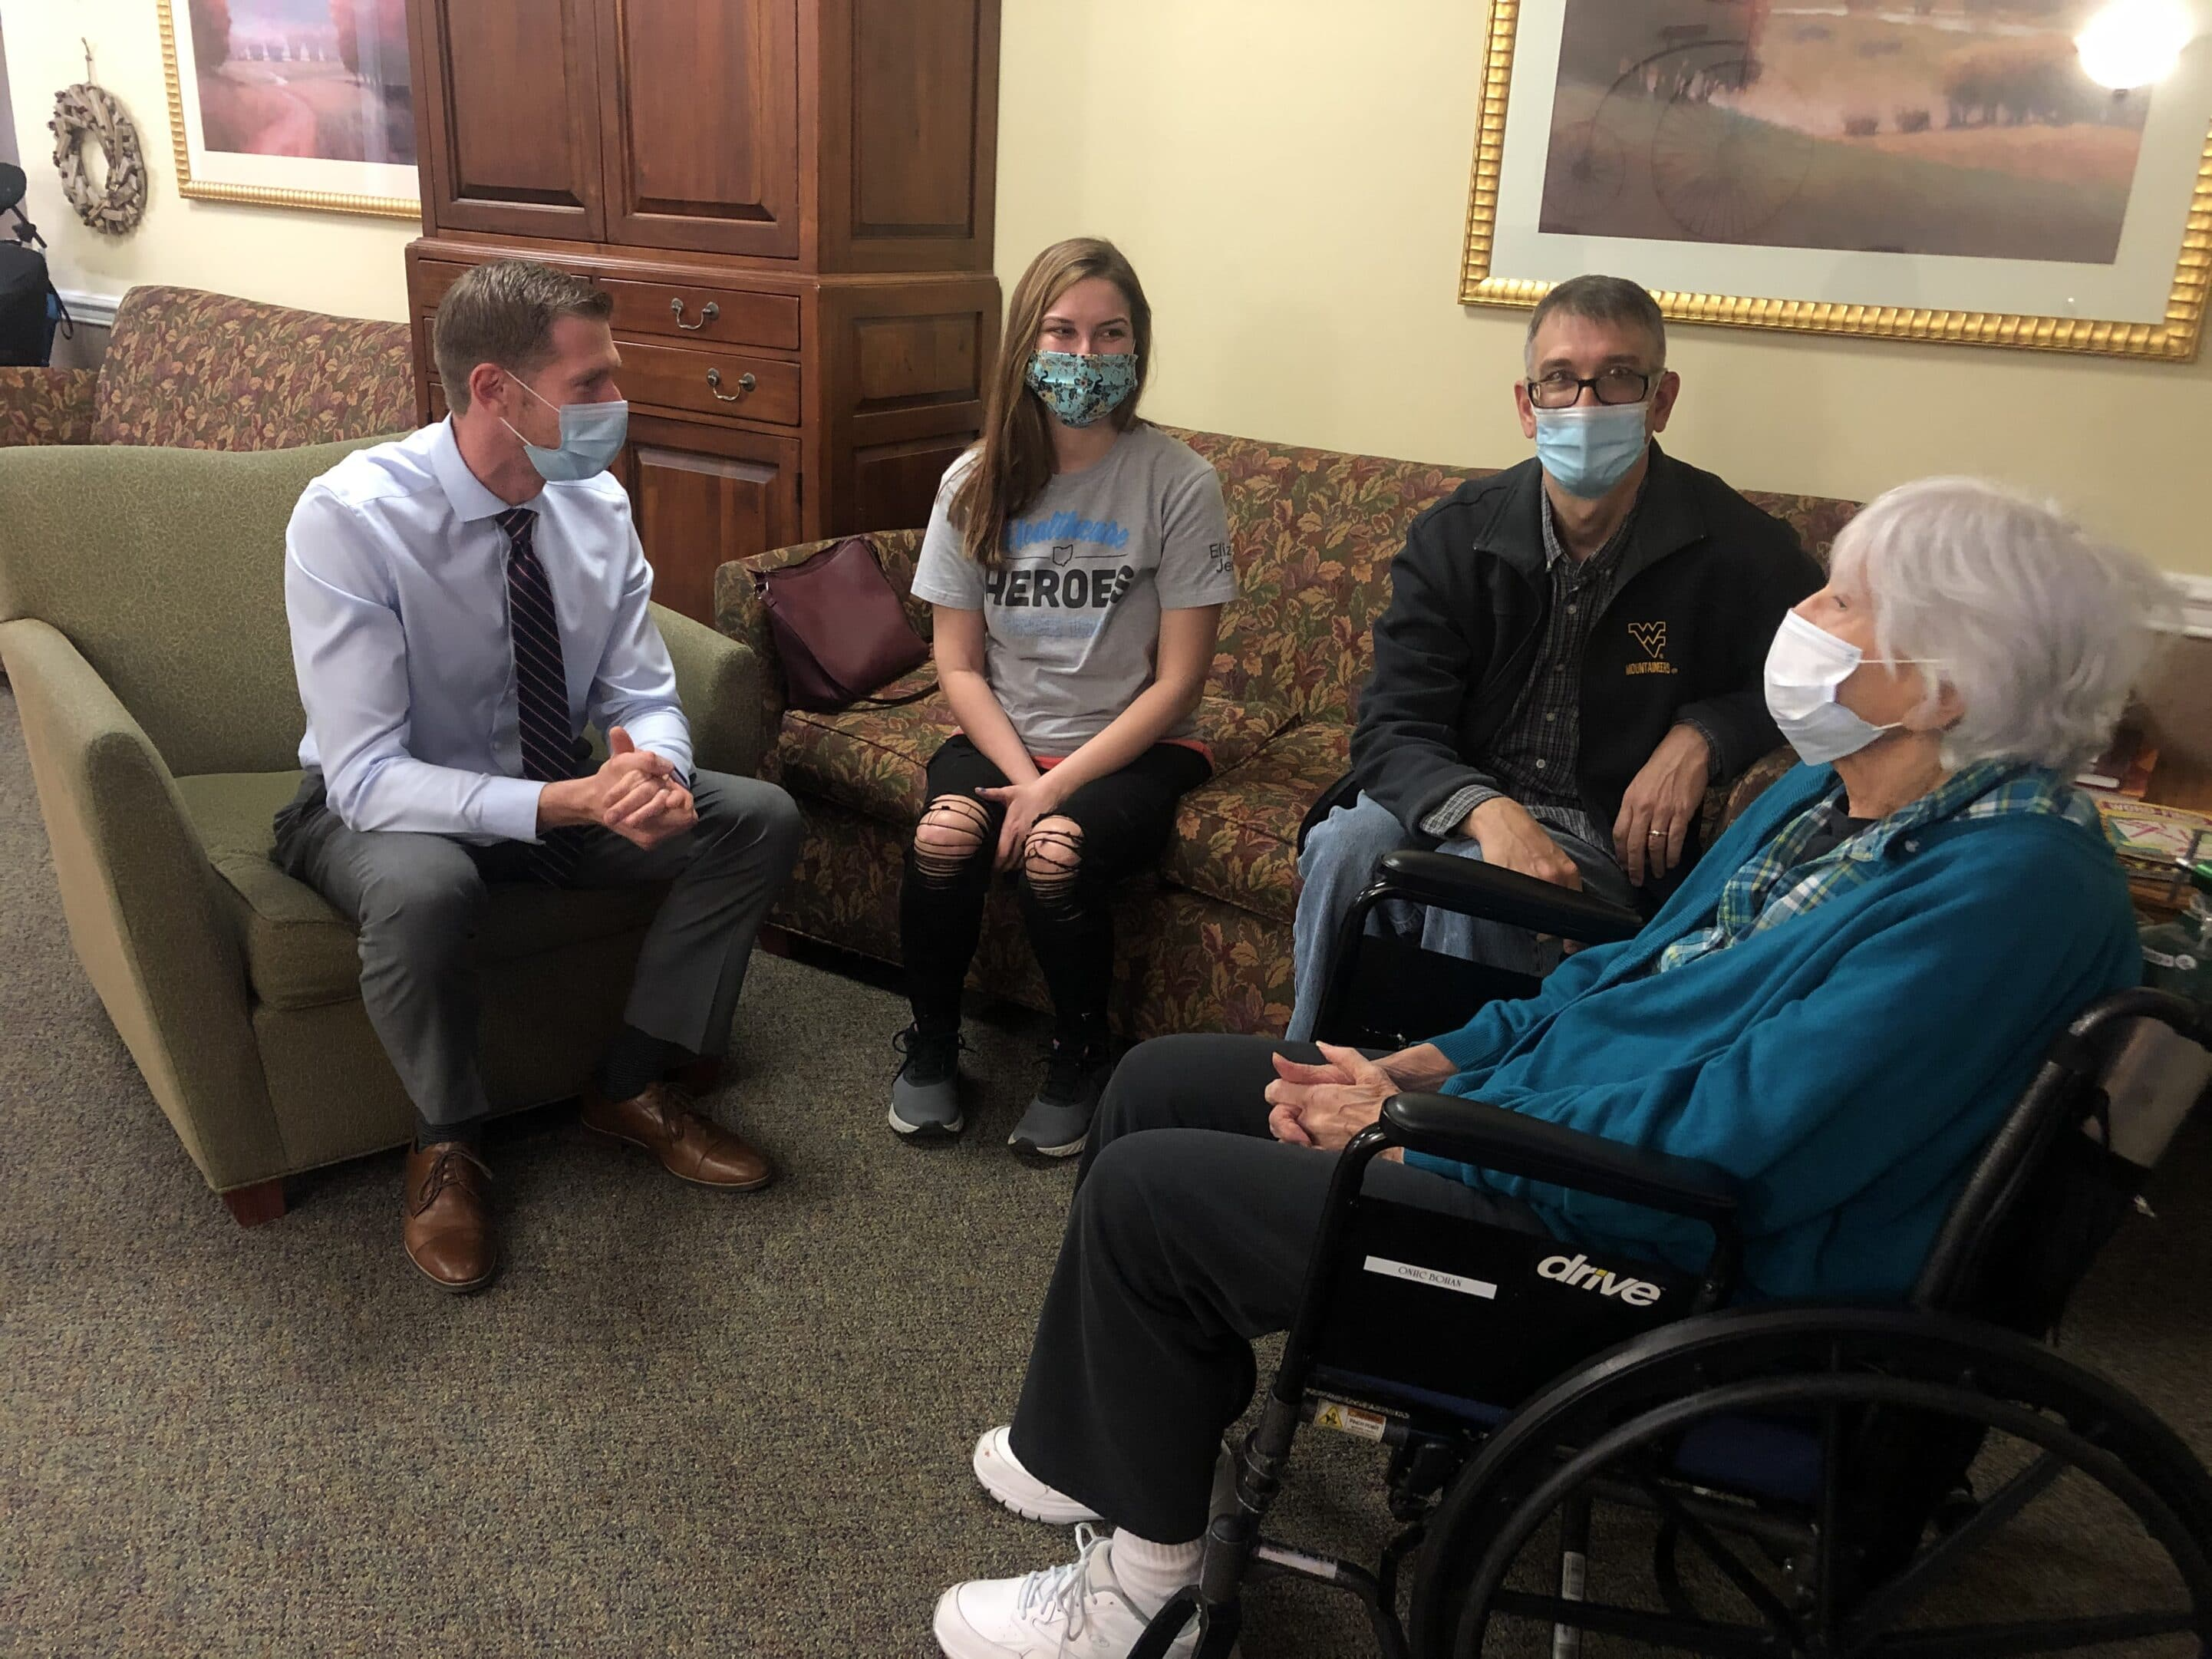 Four people sitting on couches talking. all are wearing masks.